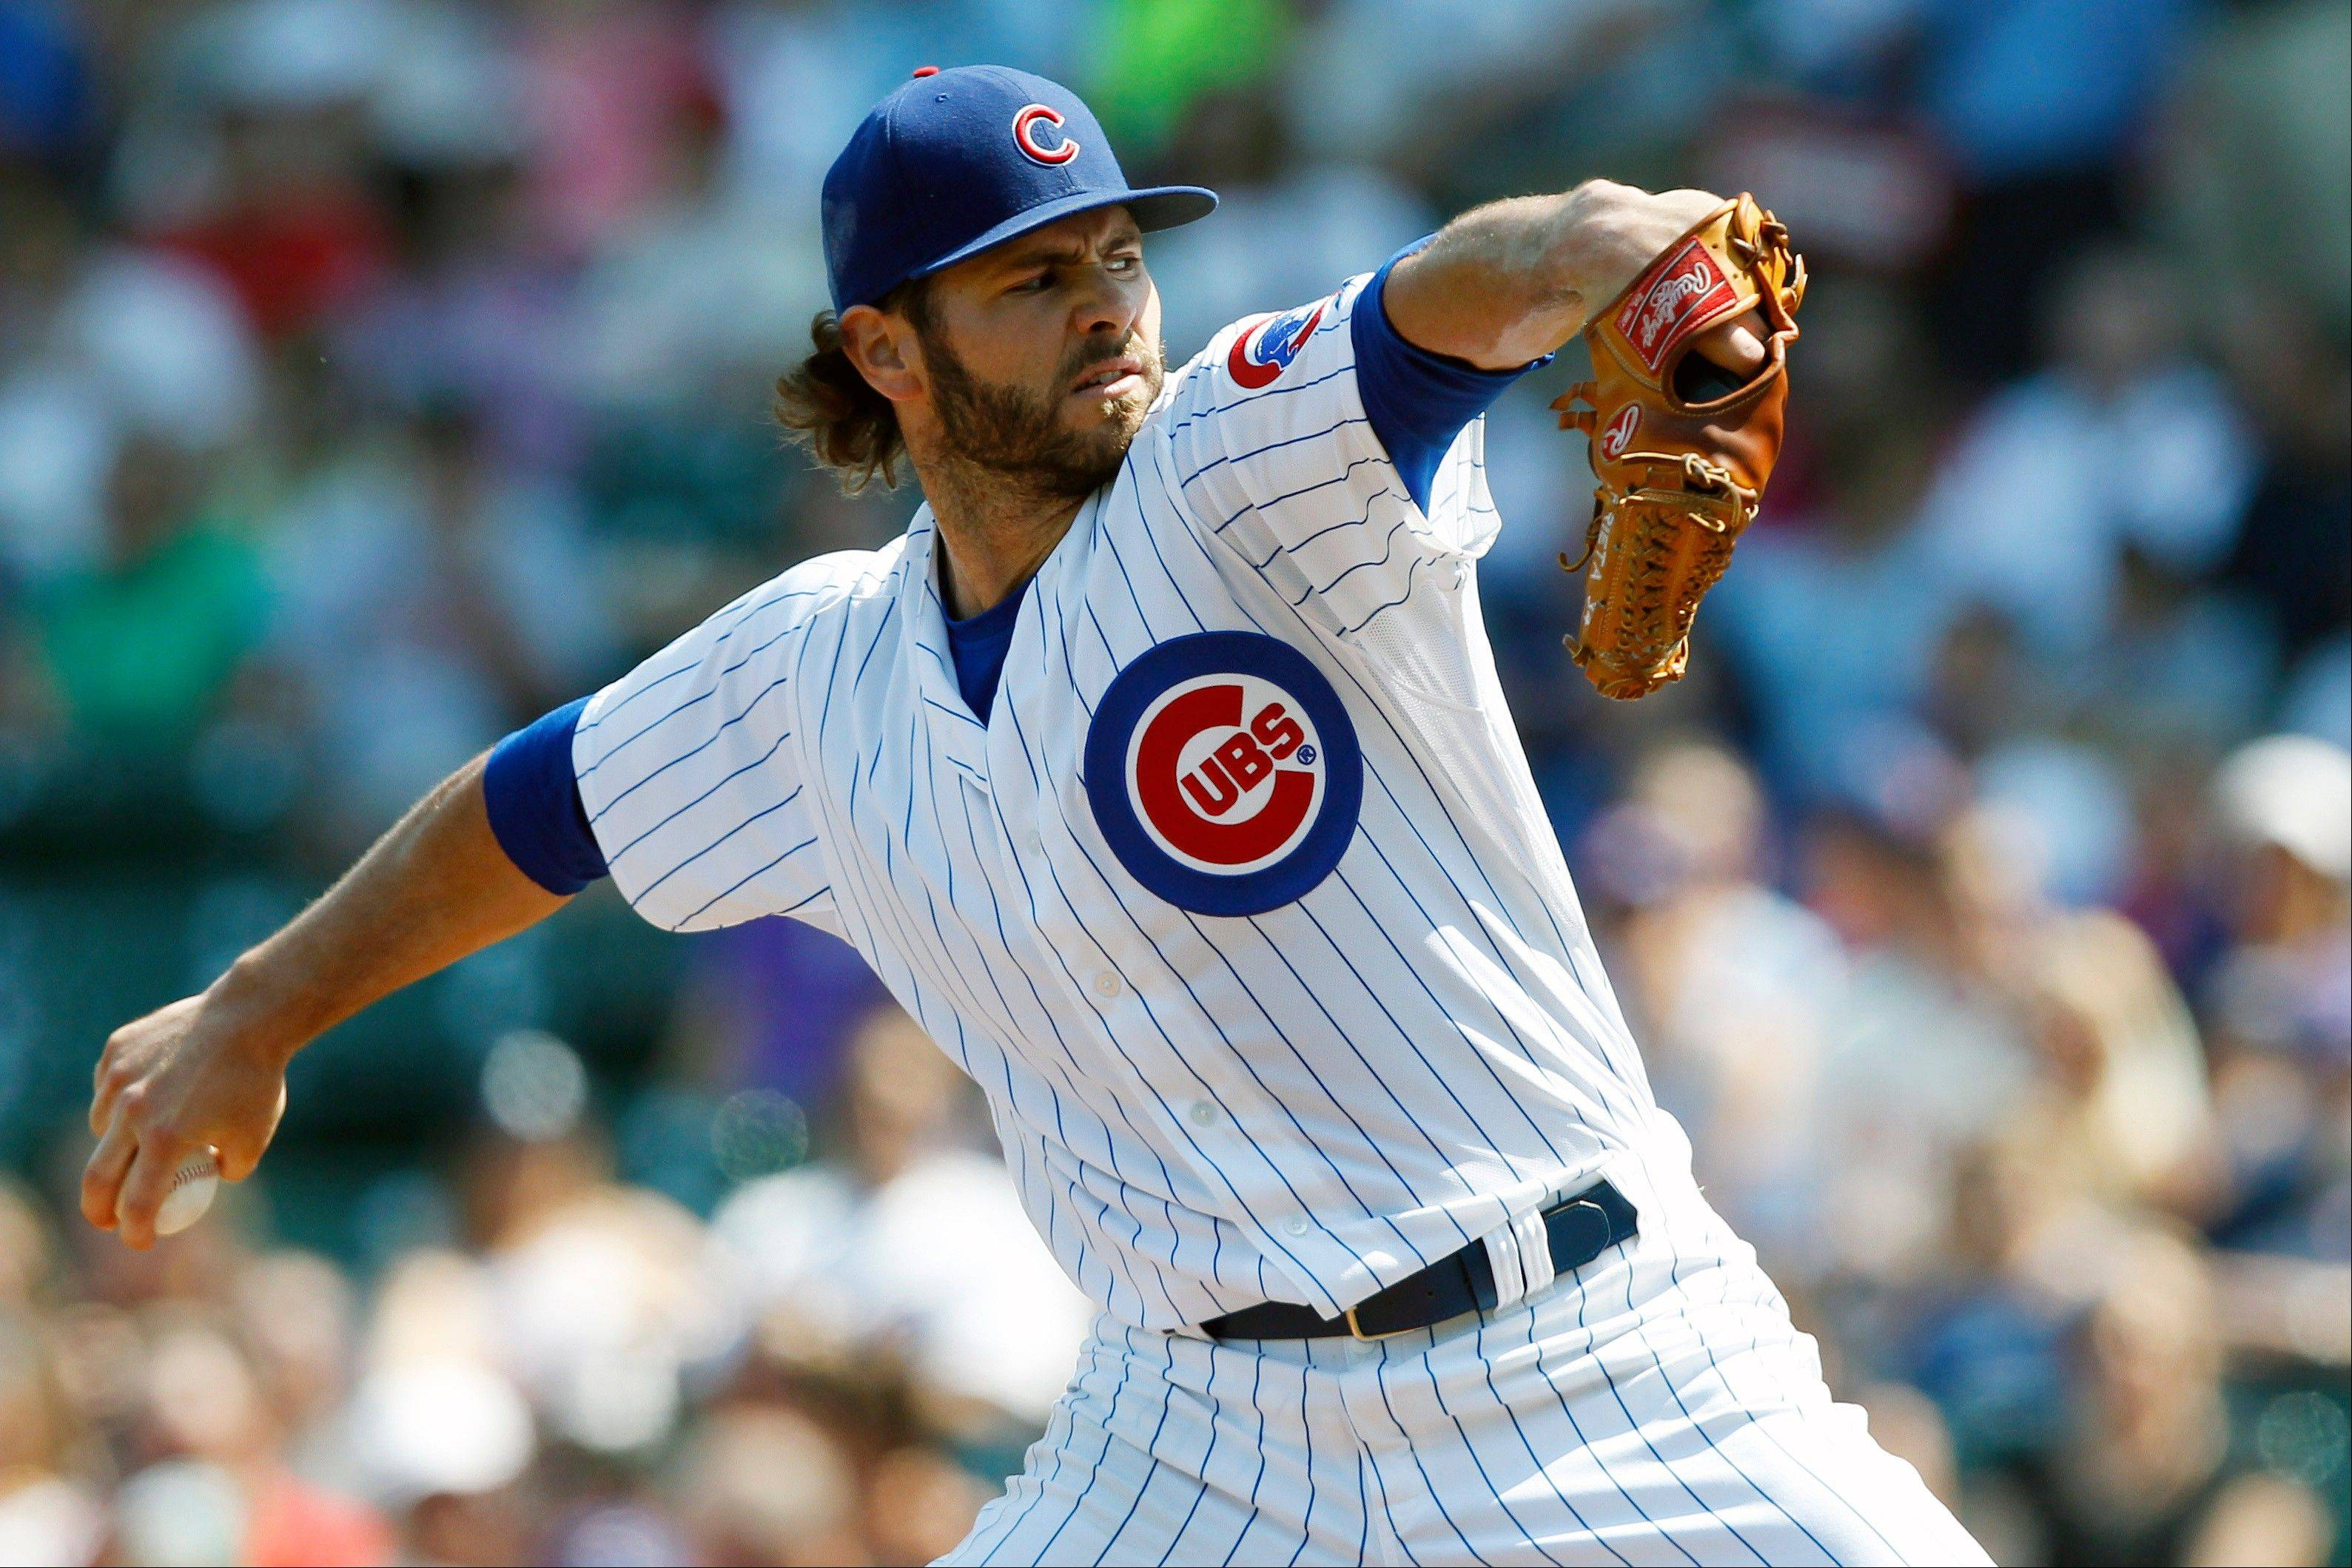 Cubs starting pitcher Jake Arrieta allowed on 1 run on 3 hits in 62⁄3 innings Sunday against the Phillies to get the win.